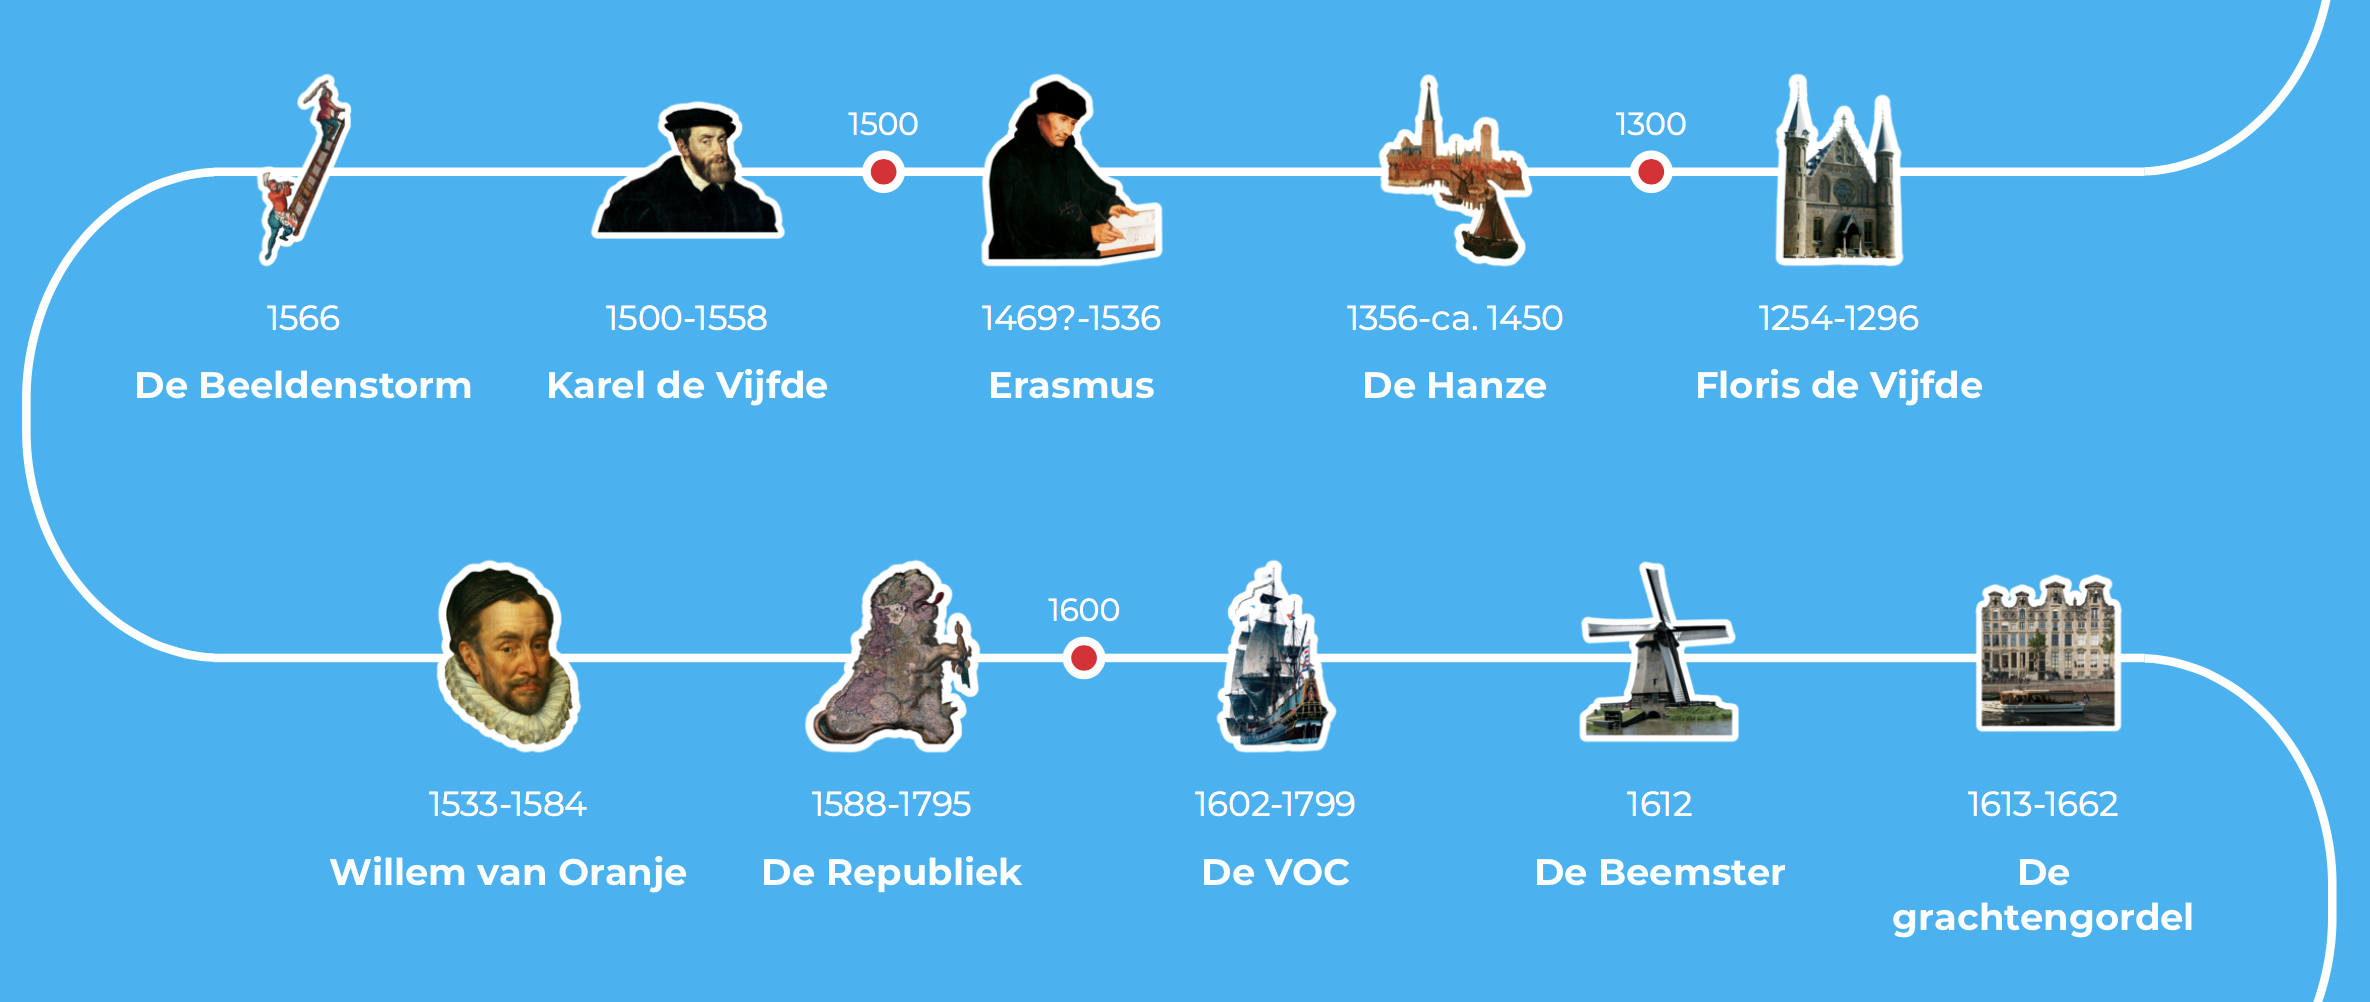 A fragment of the online Dutch Canon. Credits: entoen.nu